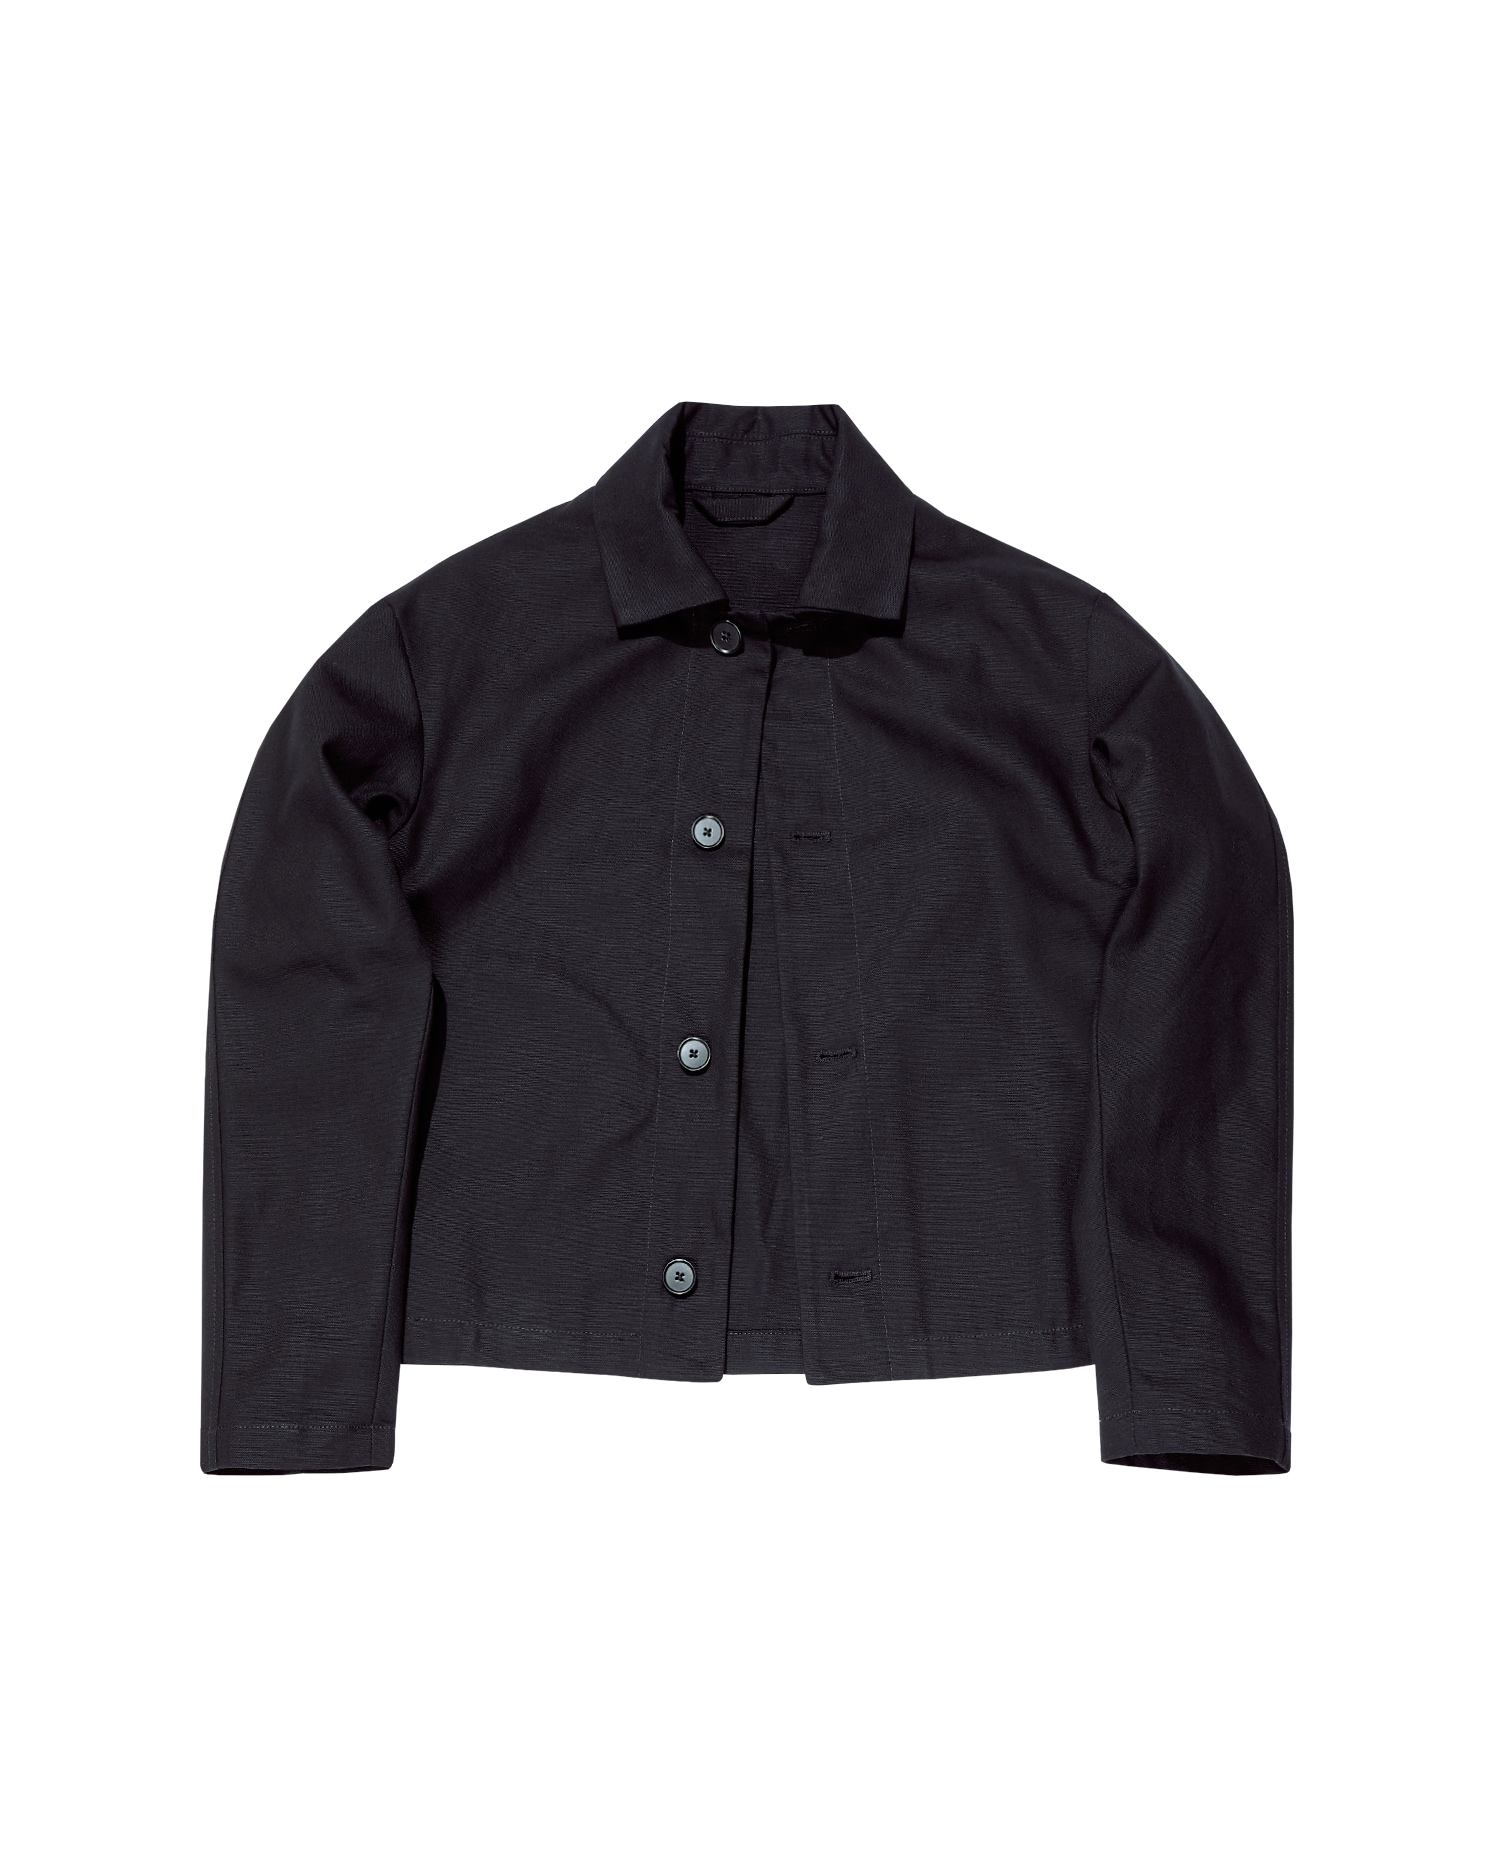 Shop Designer Worker Jacket In Black Canvas By One DNA